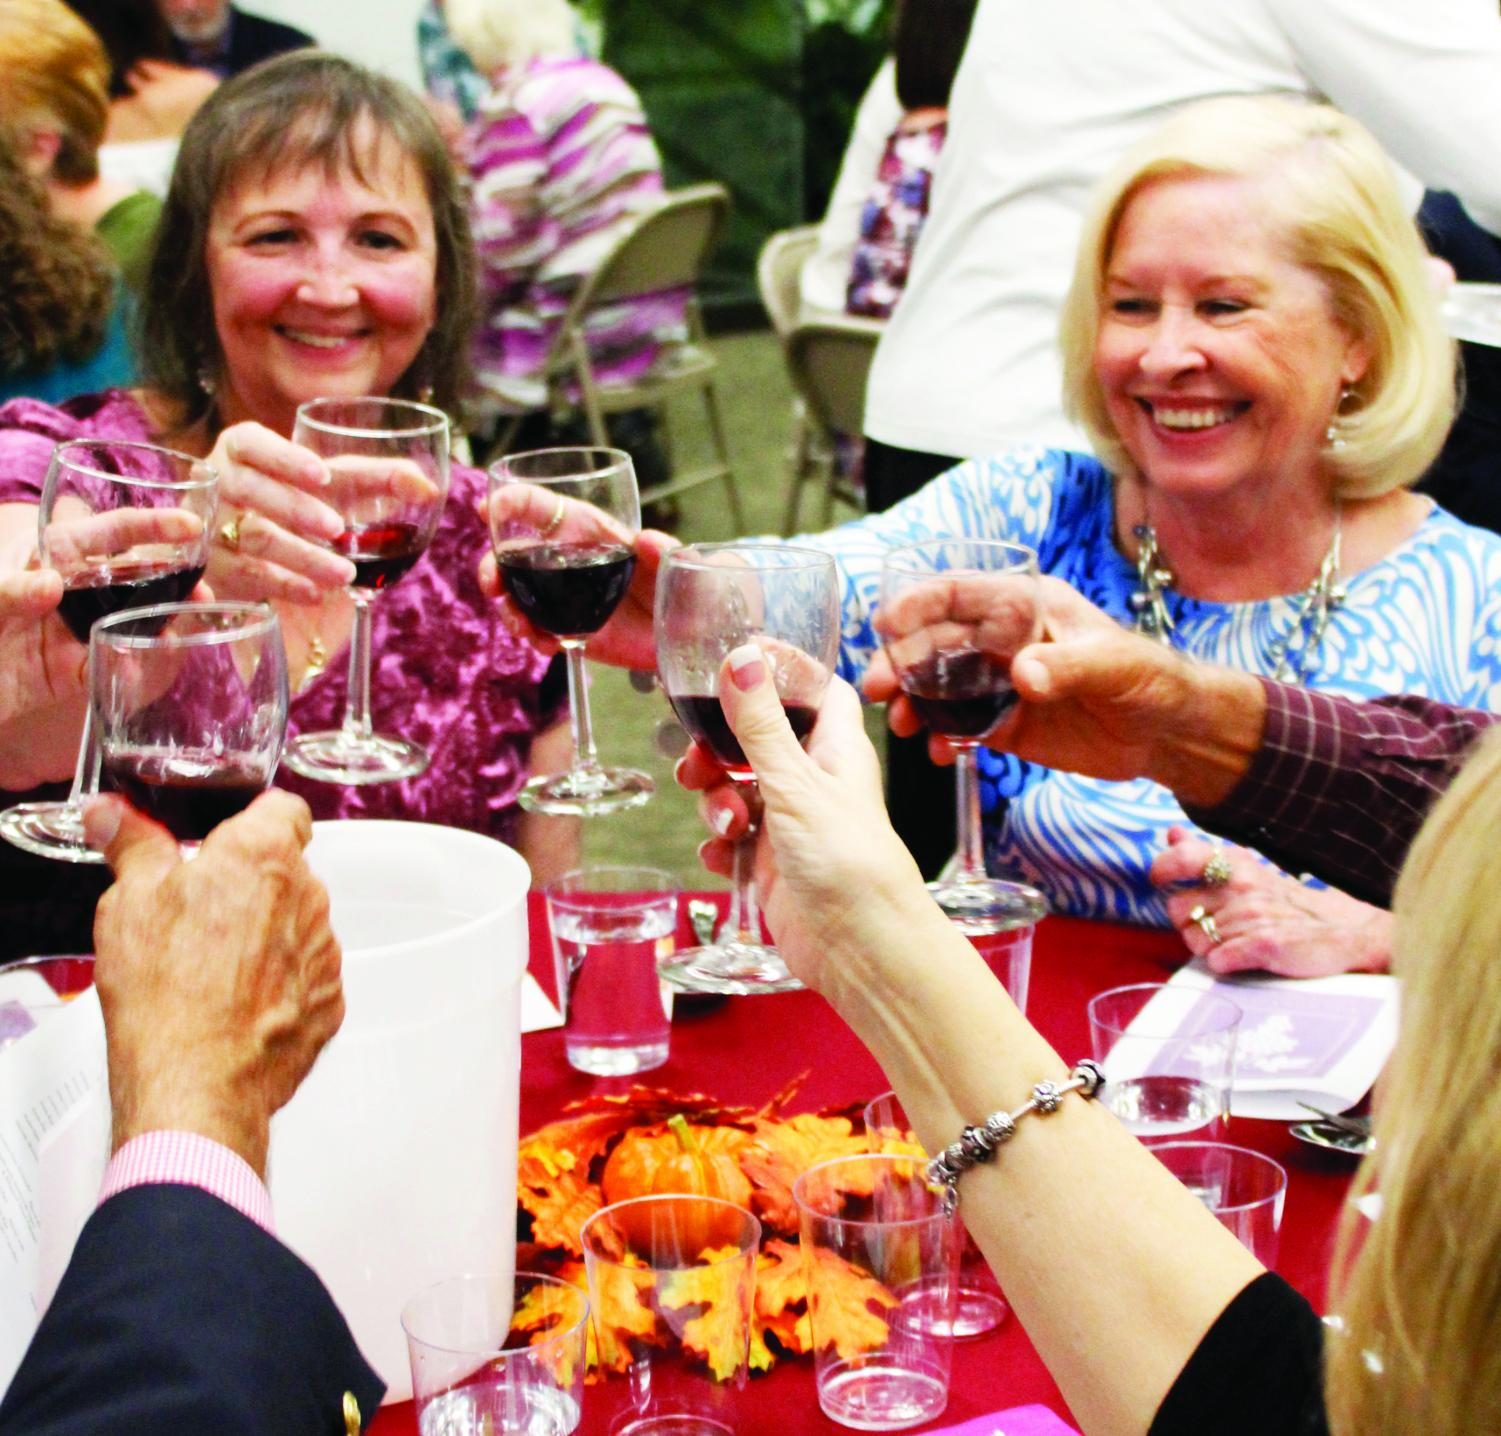 Participants enjoy during the wine tasting event organized by the Friends of Sims Library.